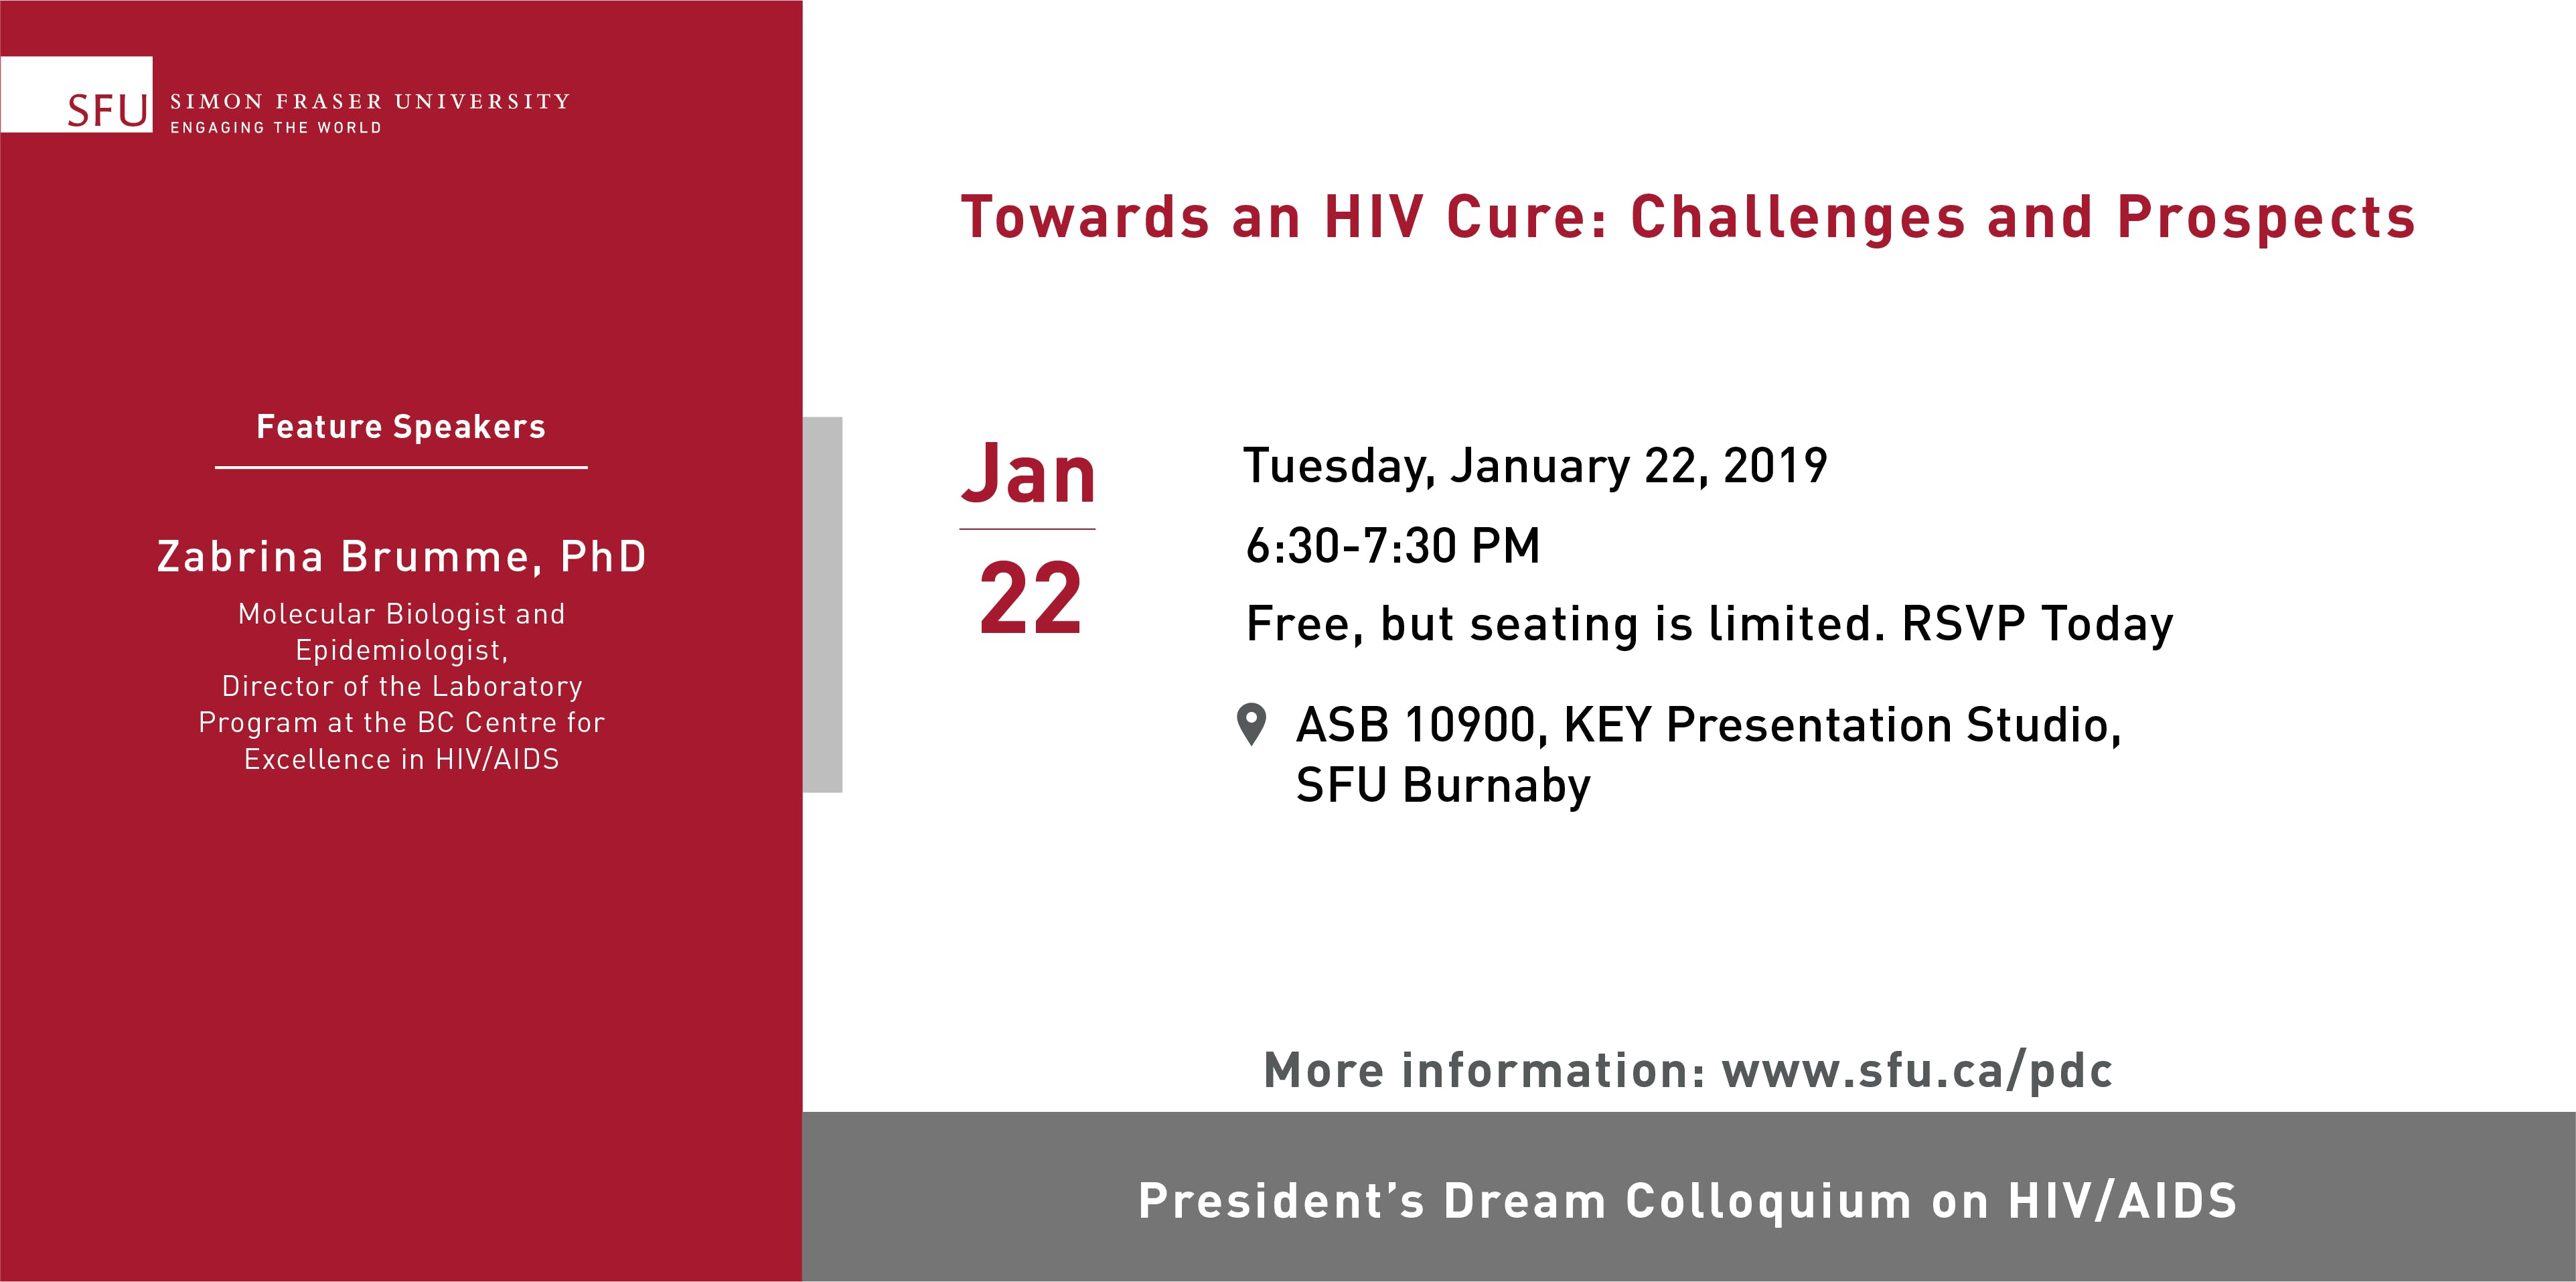 Towards an HIV Cure: Challenges and Prospects